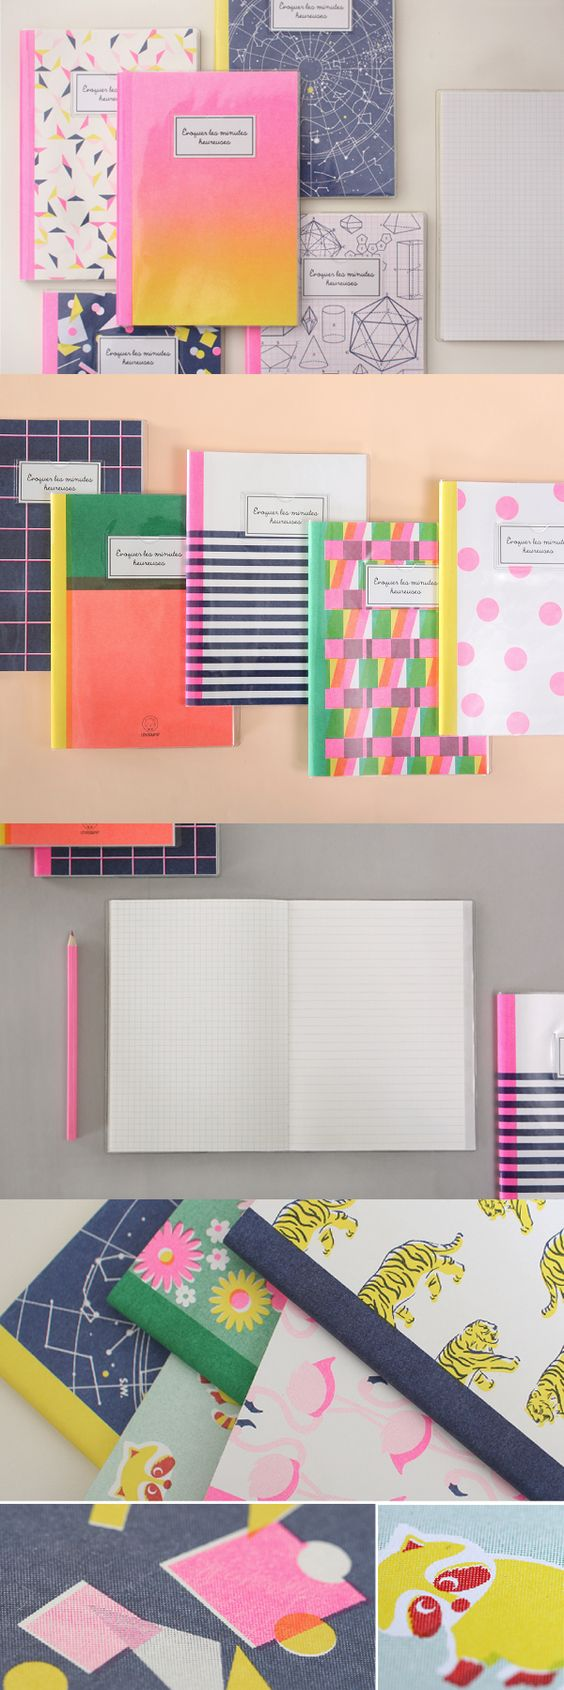 Cute Notebooks Notebooks And School Supplies On Pinterest